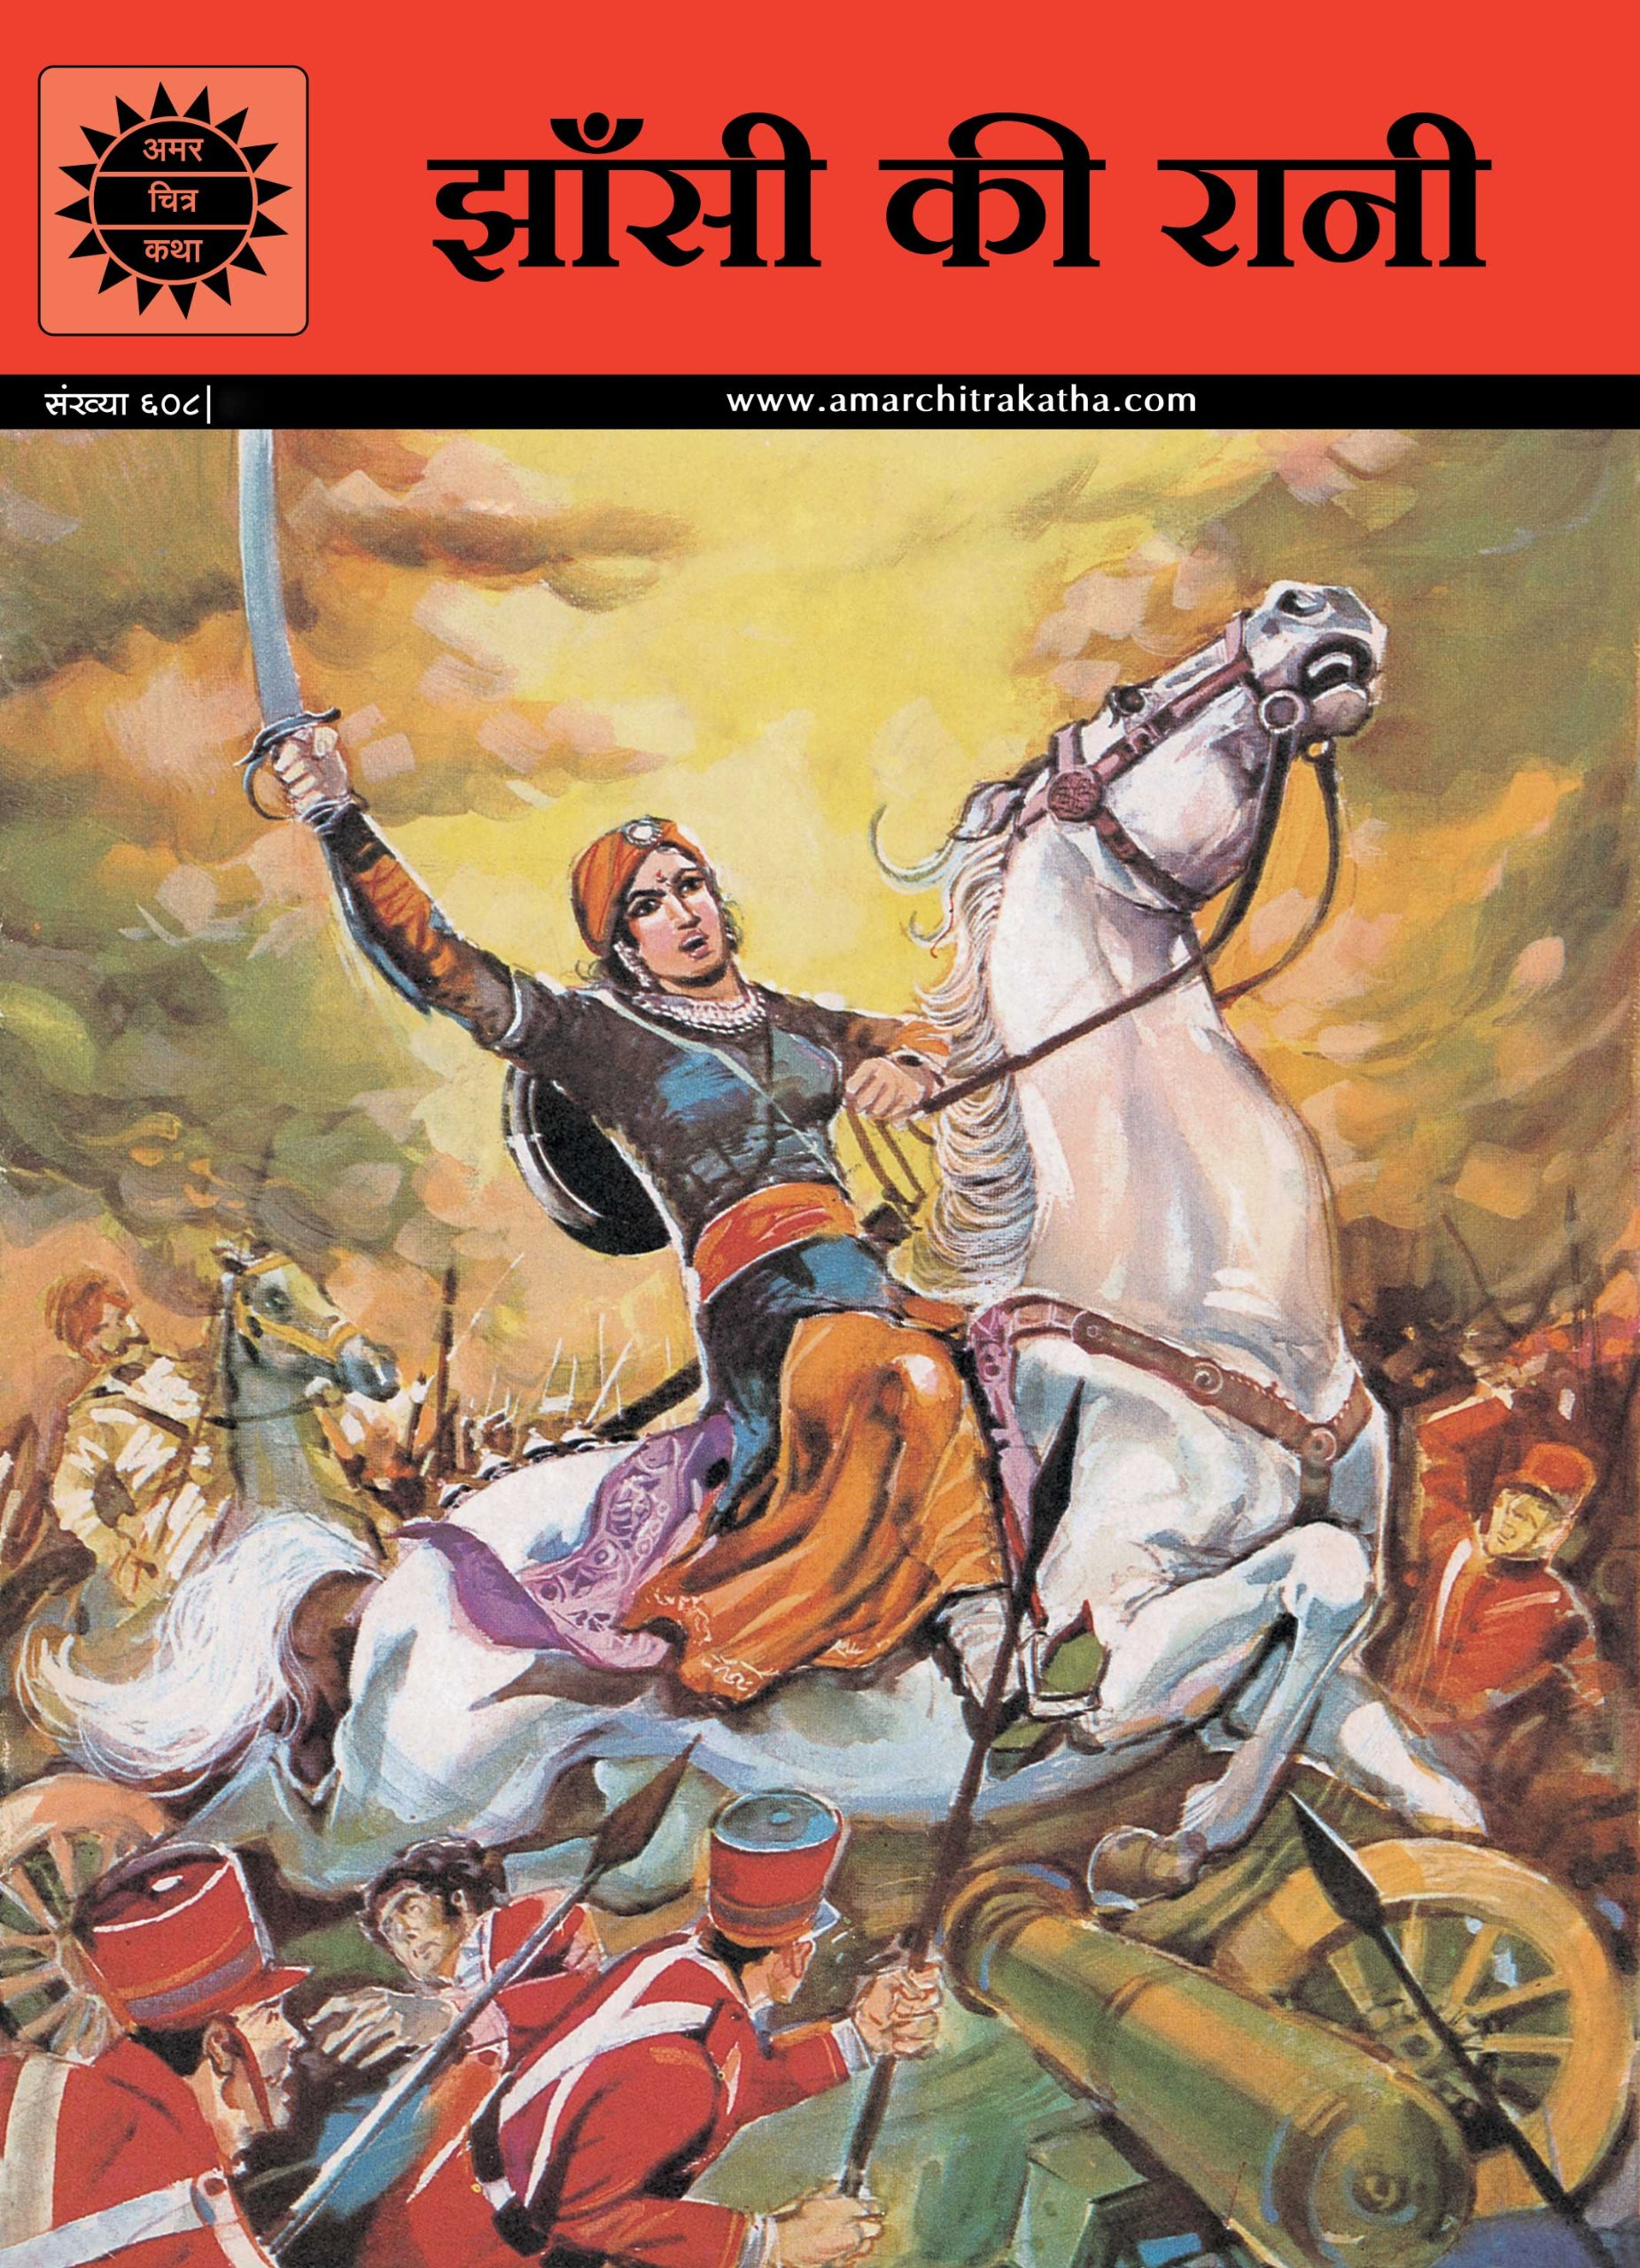 buy jhansi ki rani amar chitra katha book online at low prices in